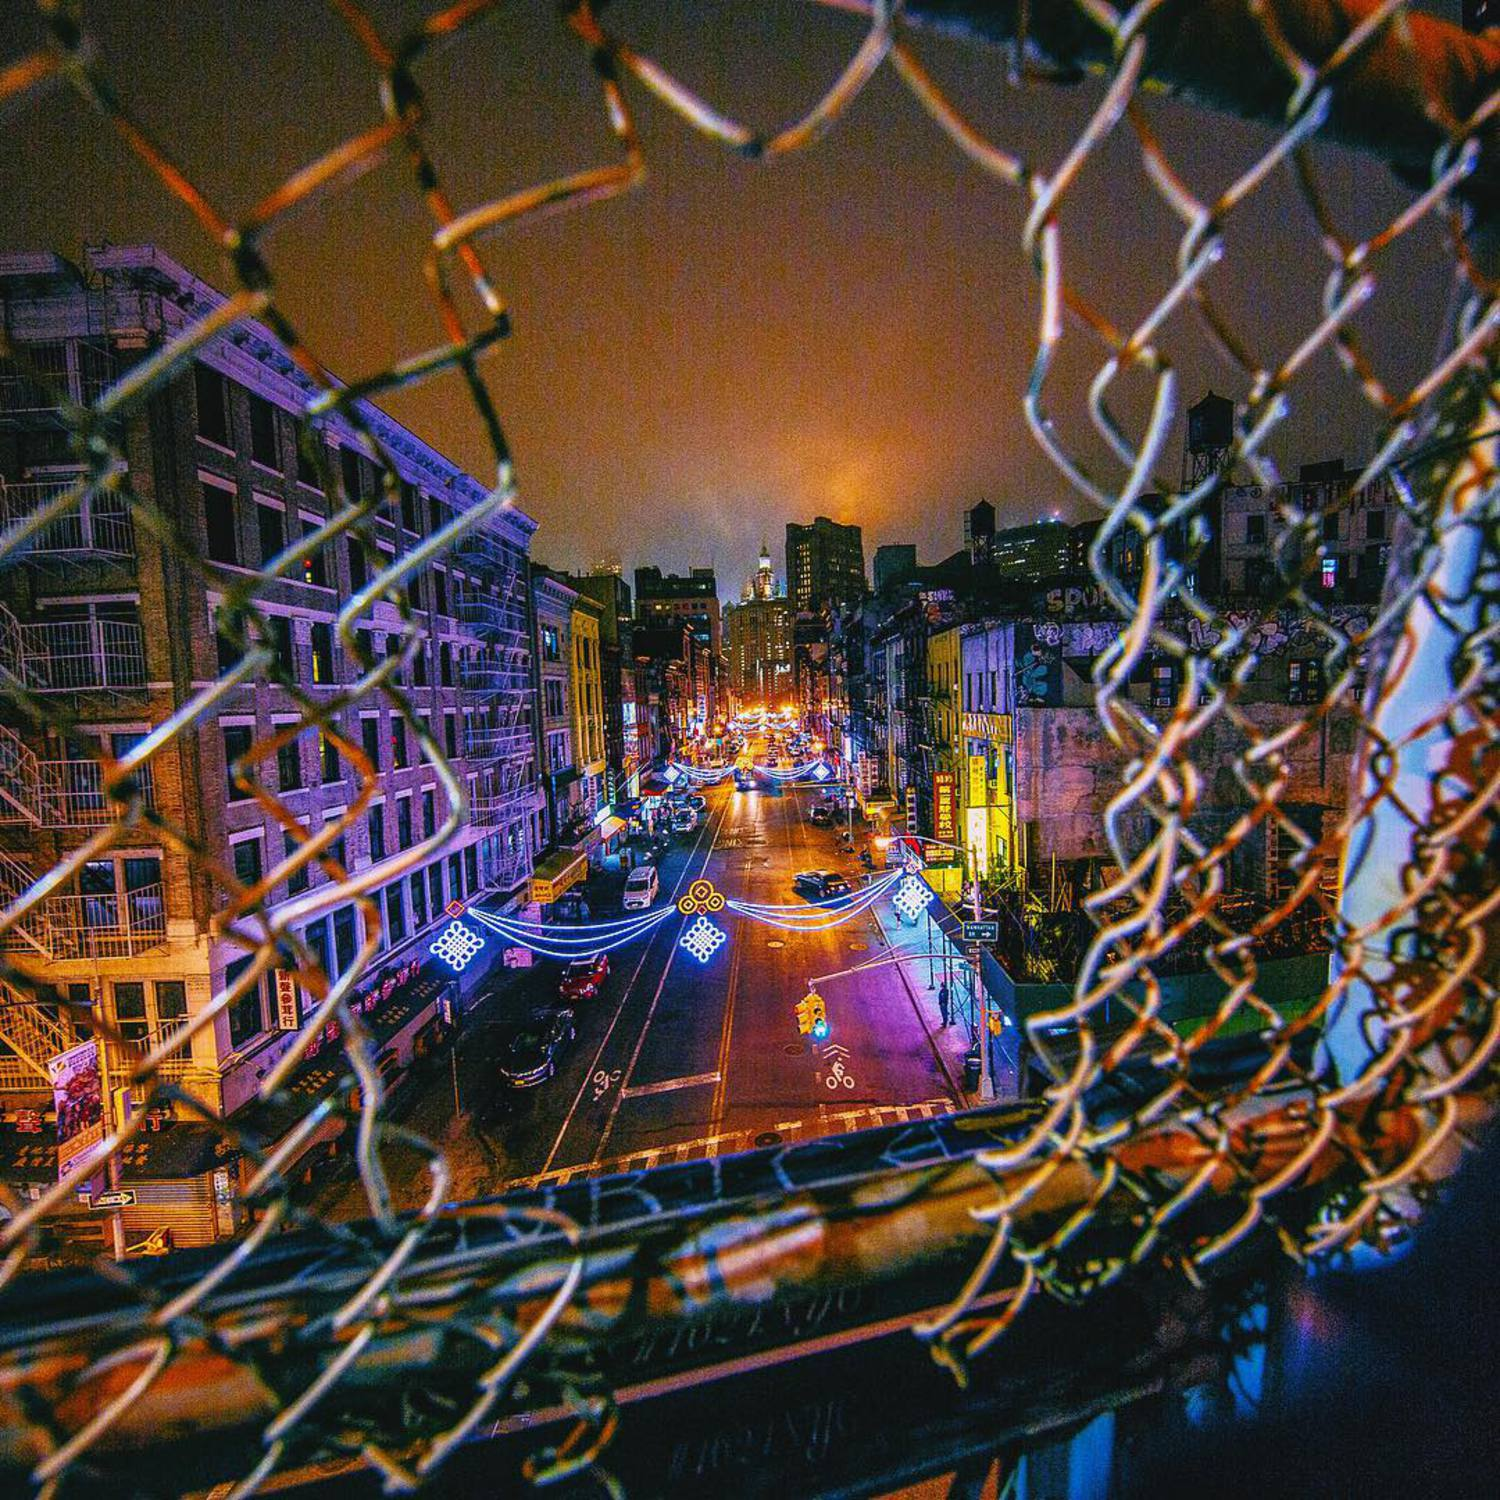 • THAT hole in the fence •  Anyone that knows NYC knows this particular hole in the fence on Manhattan Bridge and of course being the tourist that I am I had to get the shot as well! Shot on a late night with a great bunch of friends. 🙌🏼🇺🇸